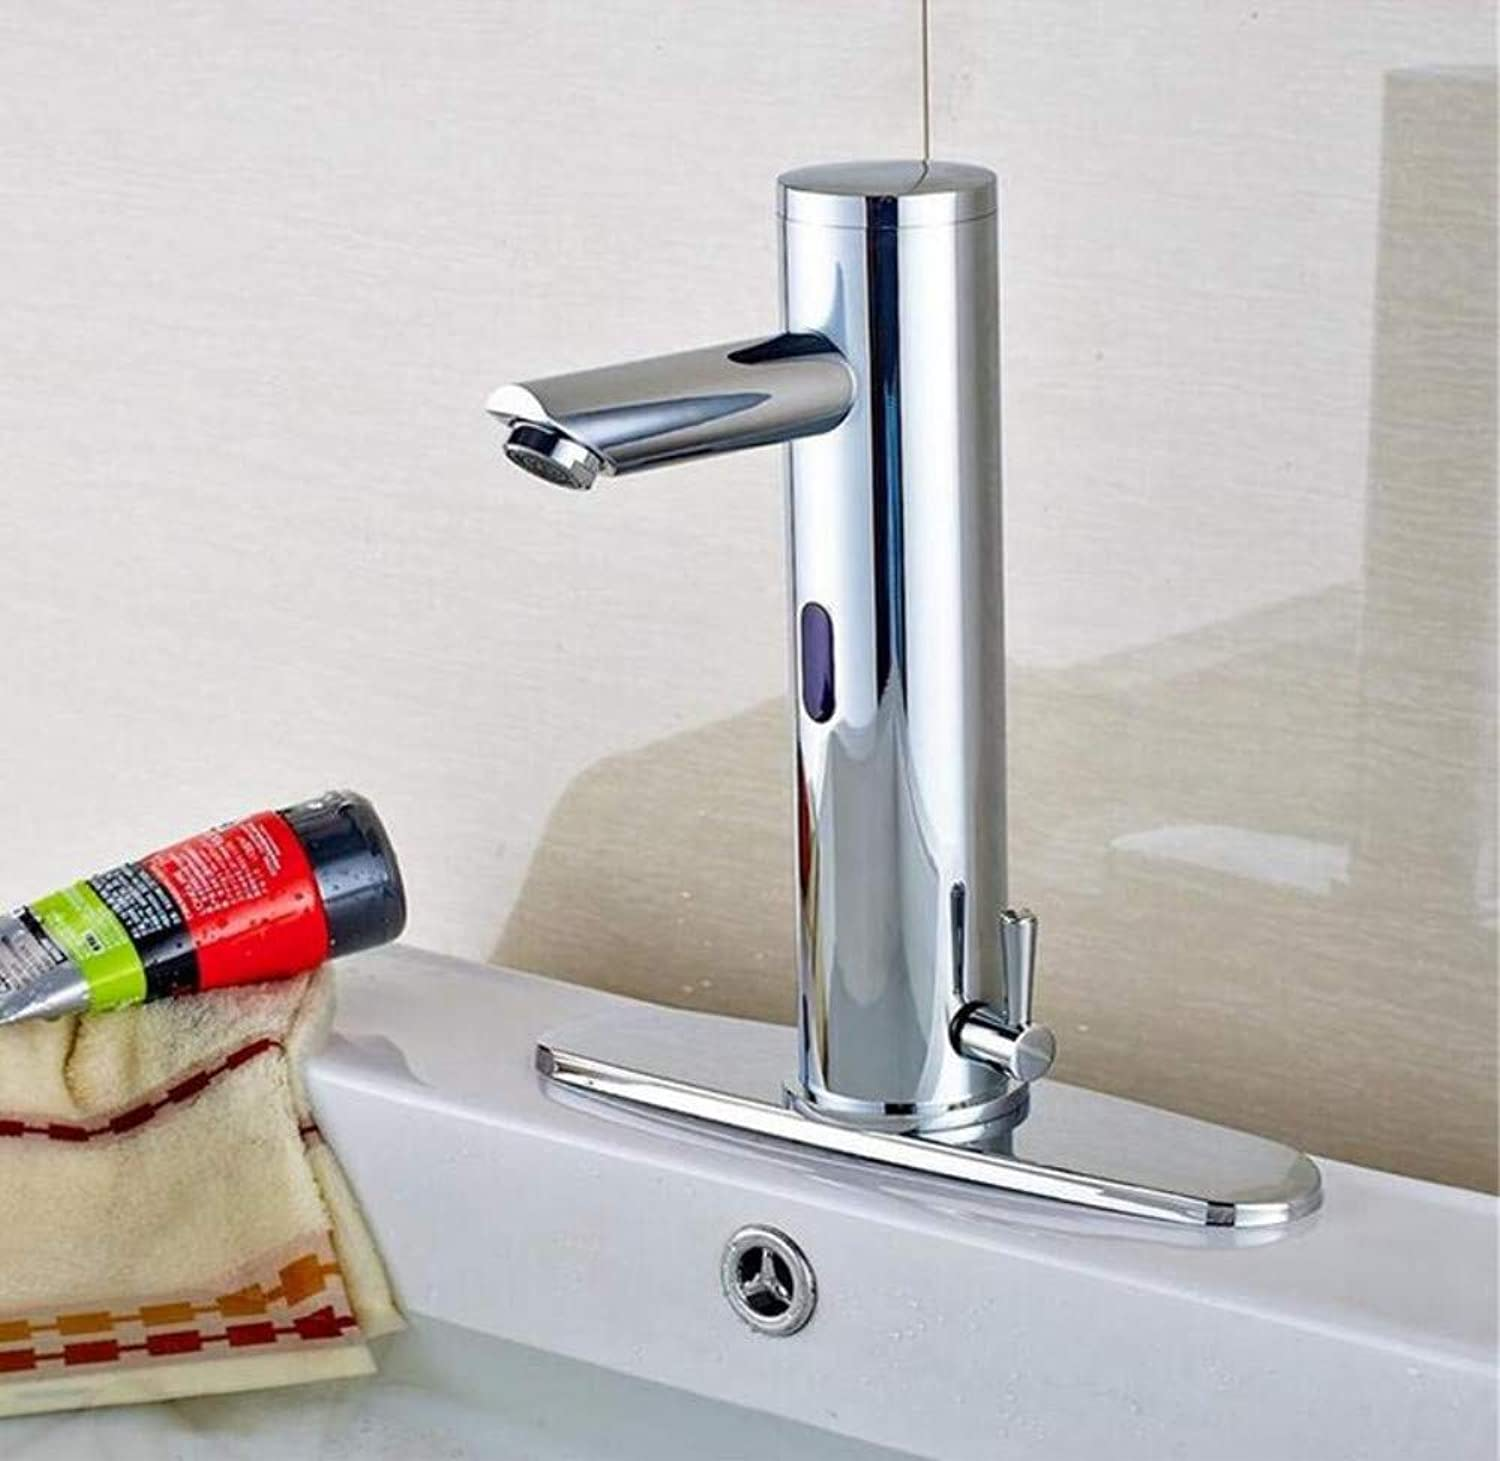 Brass Wall Faucet Chrome Brass Faucet Deck Mount Waterfall Hot Cold Mixer Tap W 8  Cover Plate